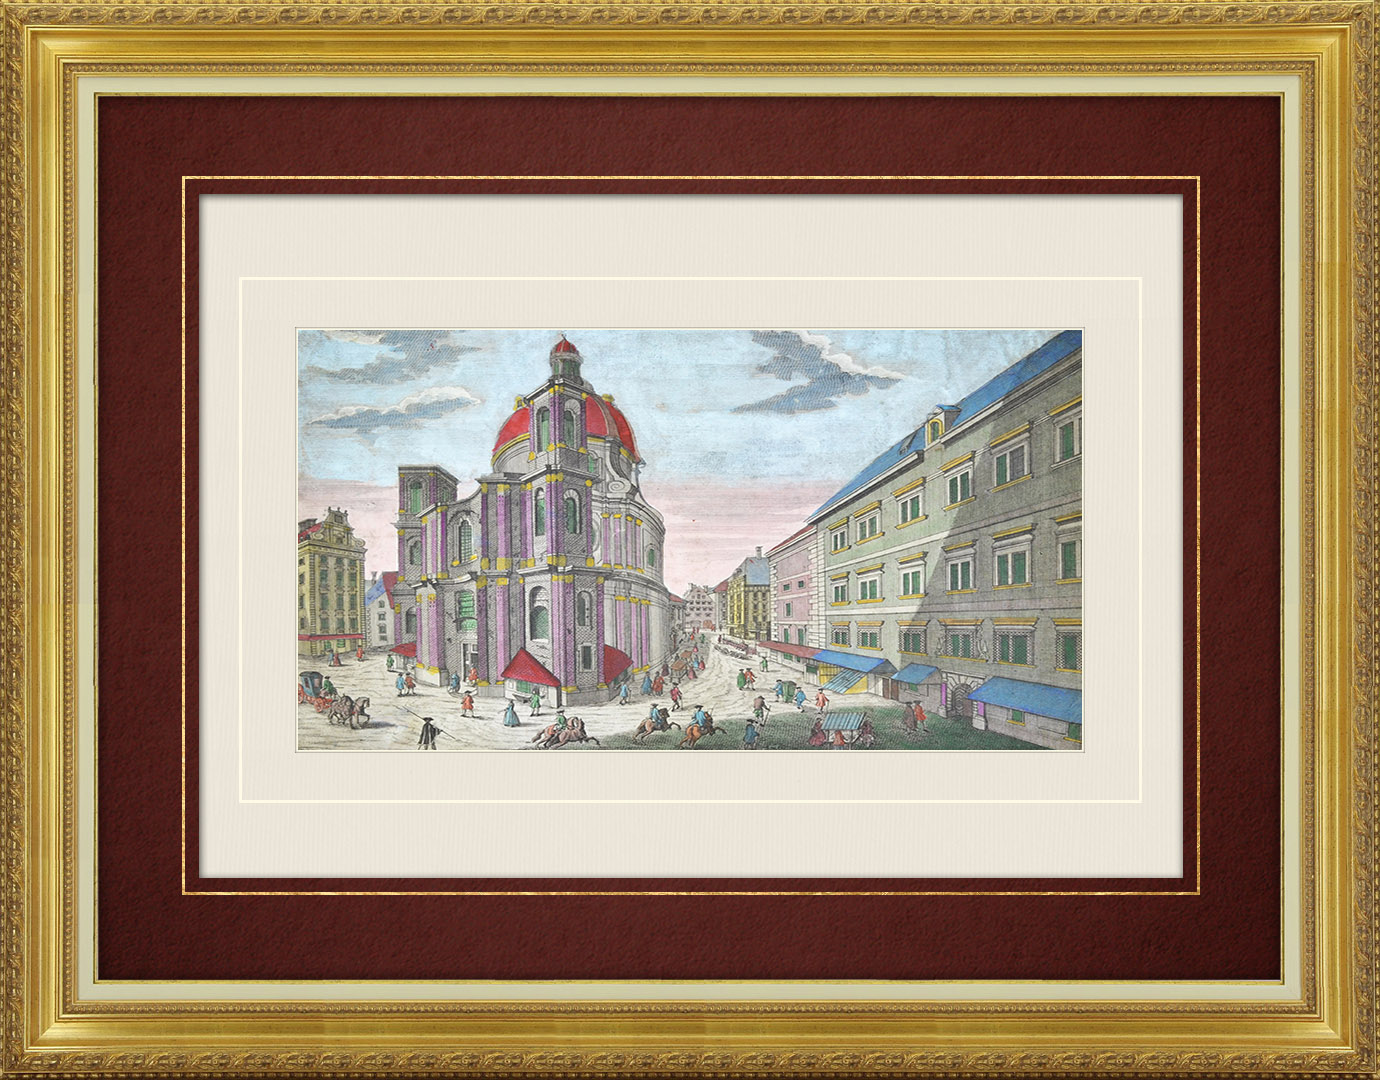 18th Century optical view in original watercolors of Strasbourg - St Thomas' Church (France)